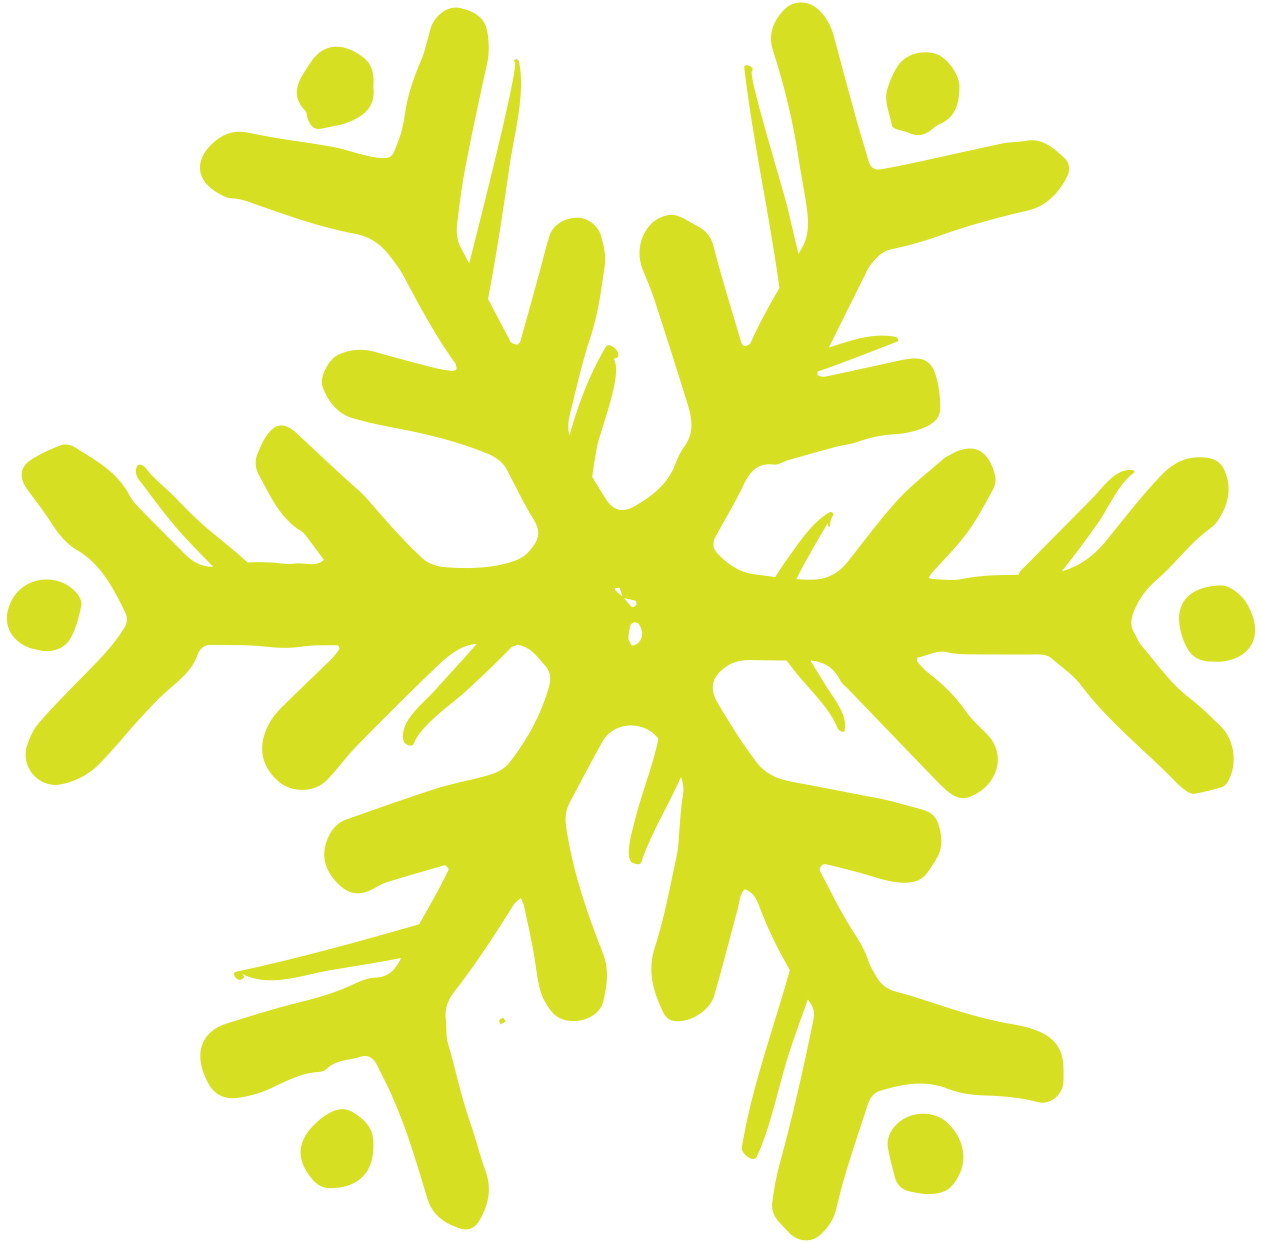 Snow flake.png